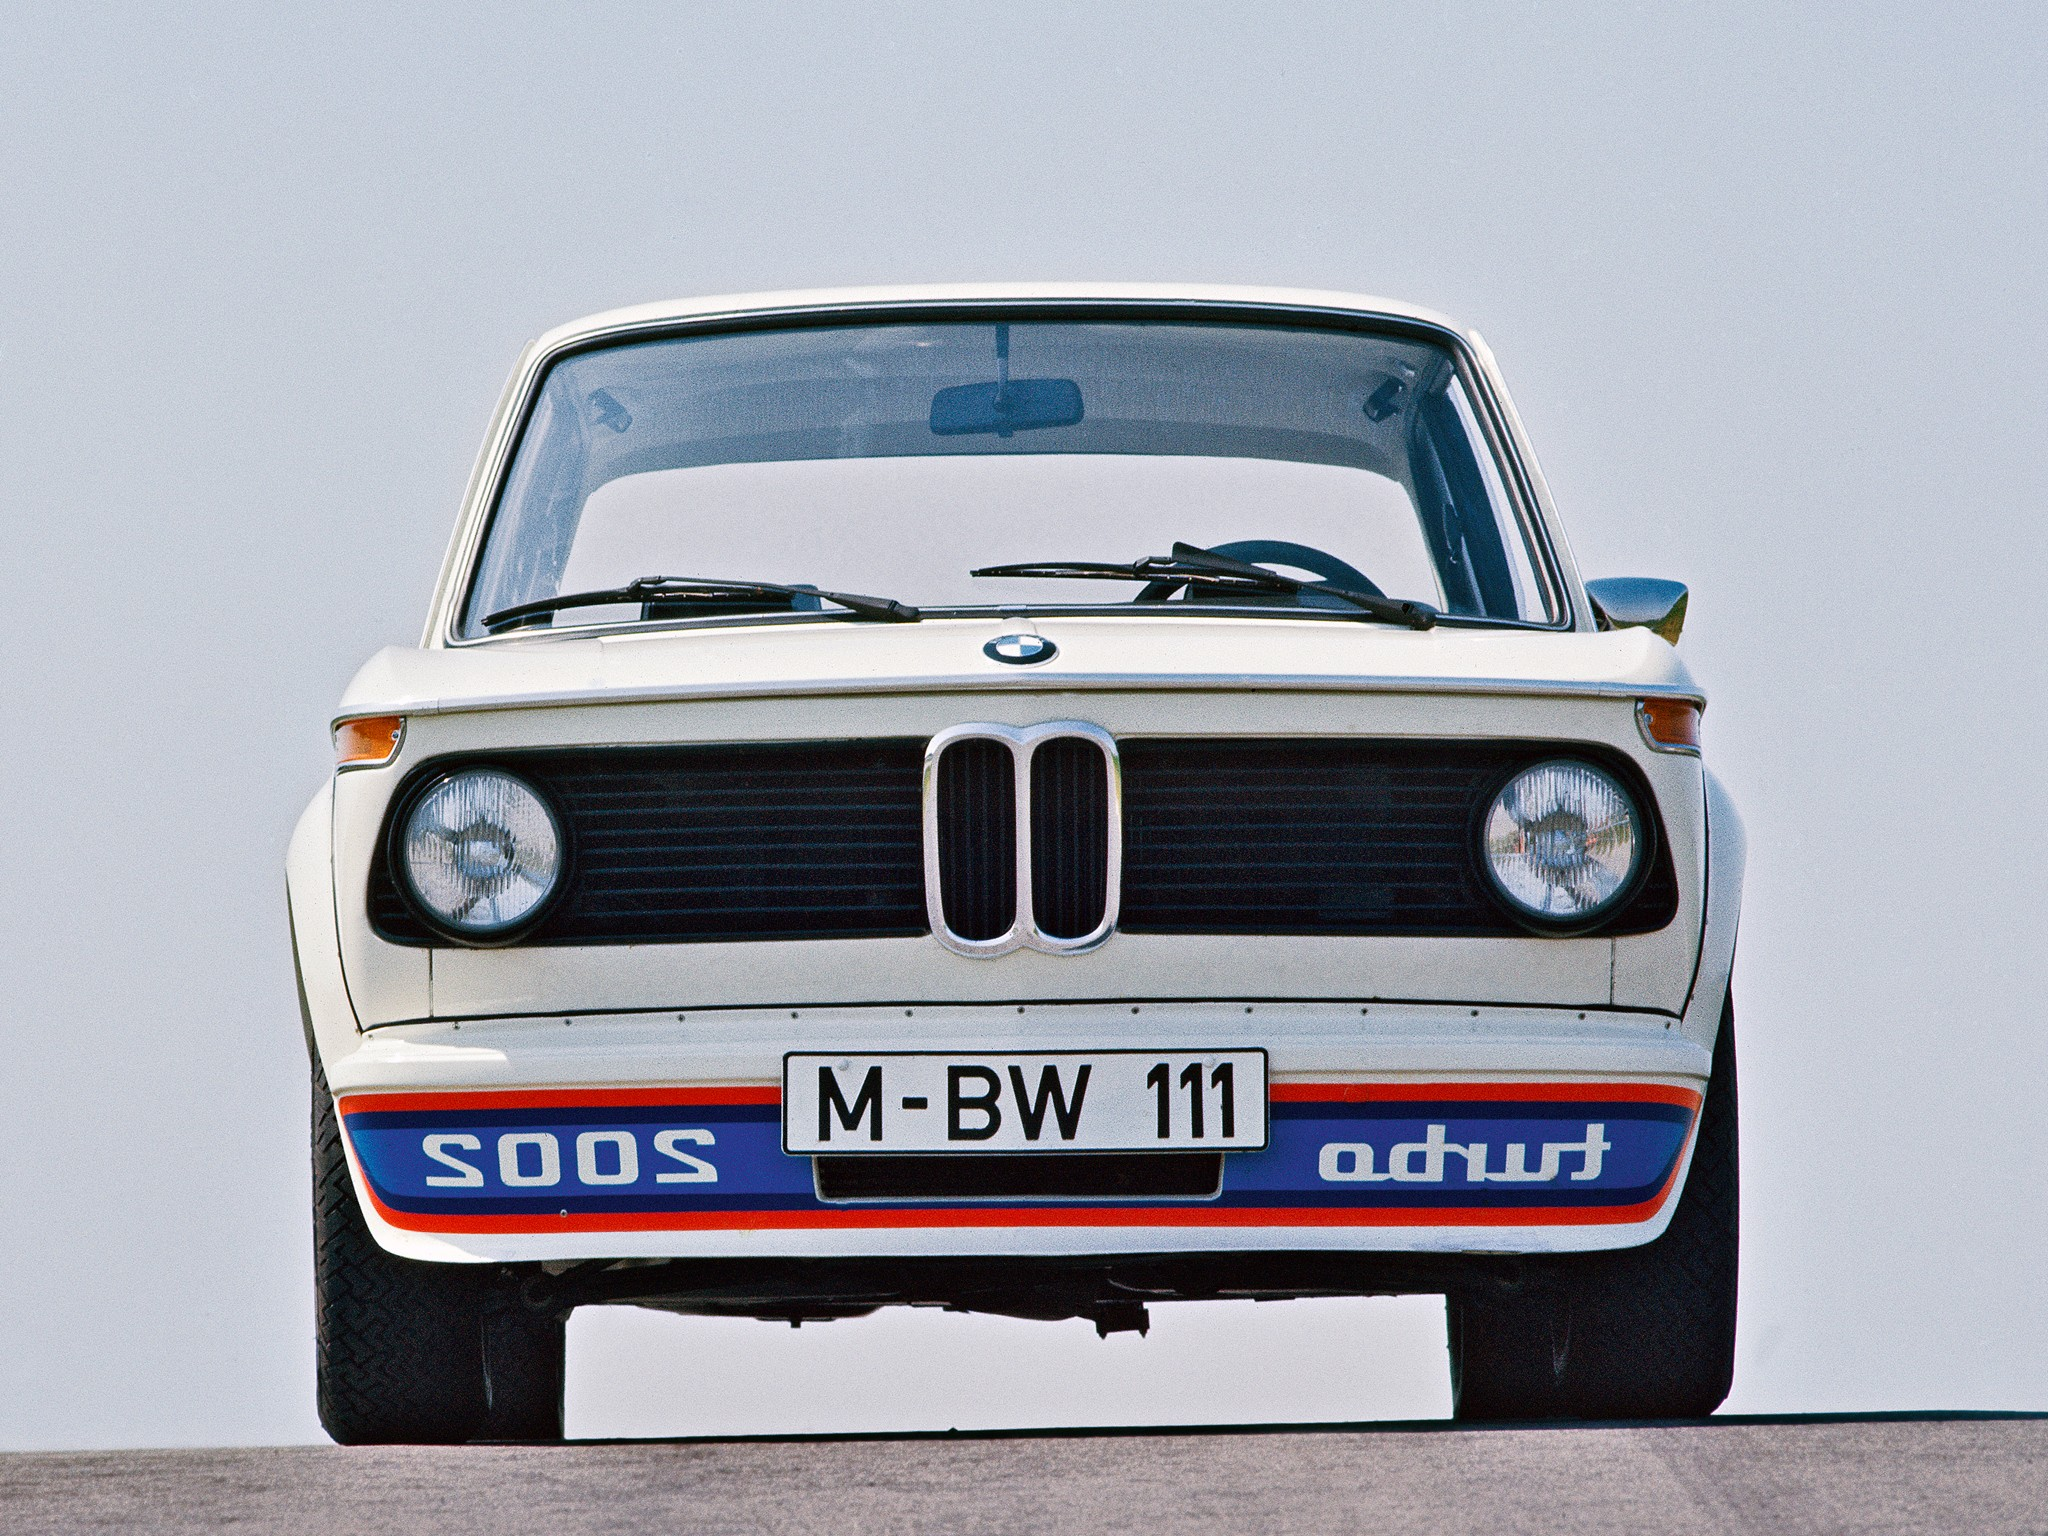 bmw 02 e10 2002 turbo 170 hp. Black Bedroom Furniture Sets. Home Design Ideas